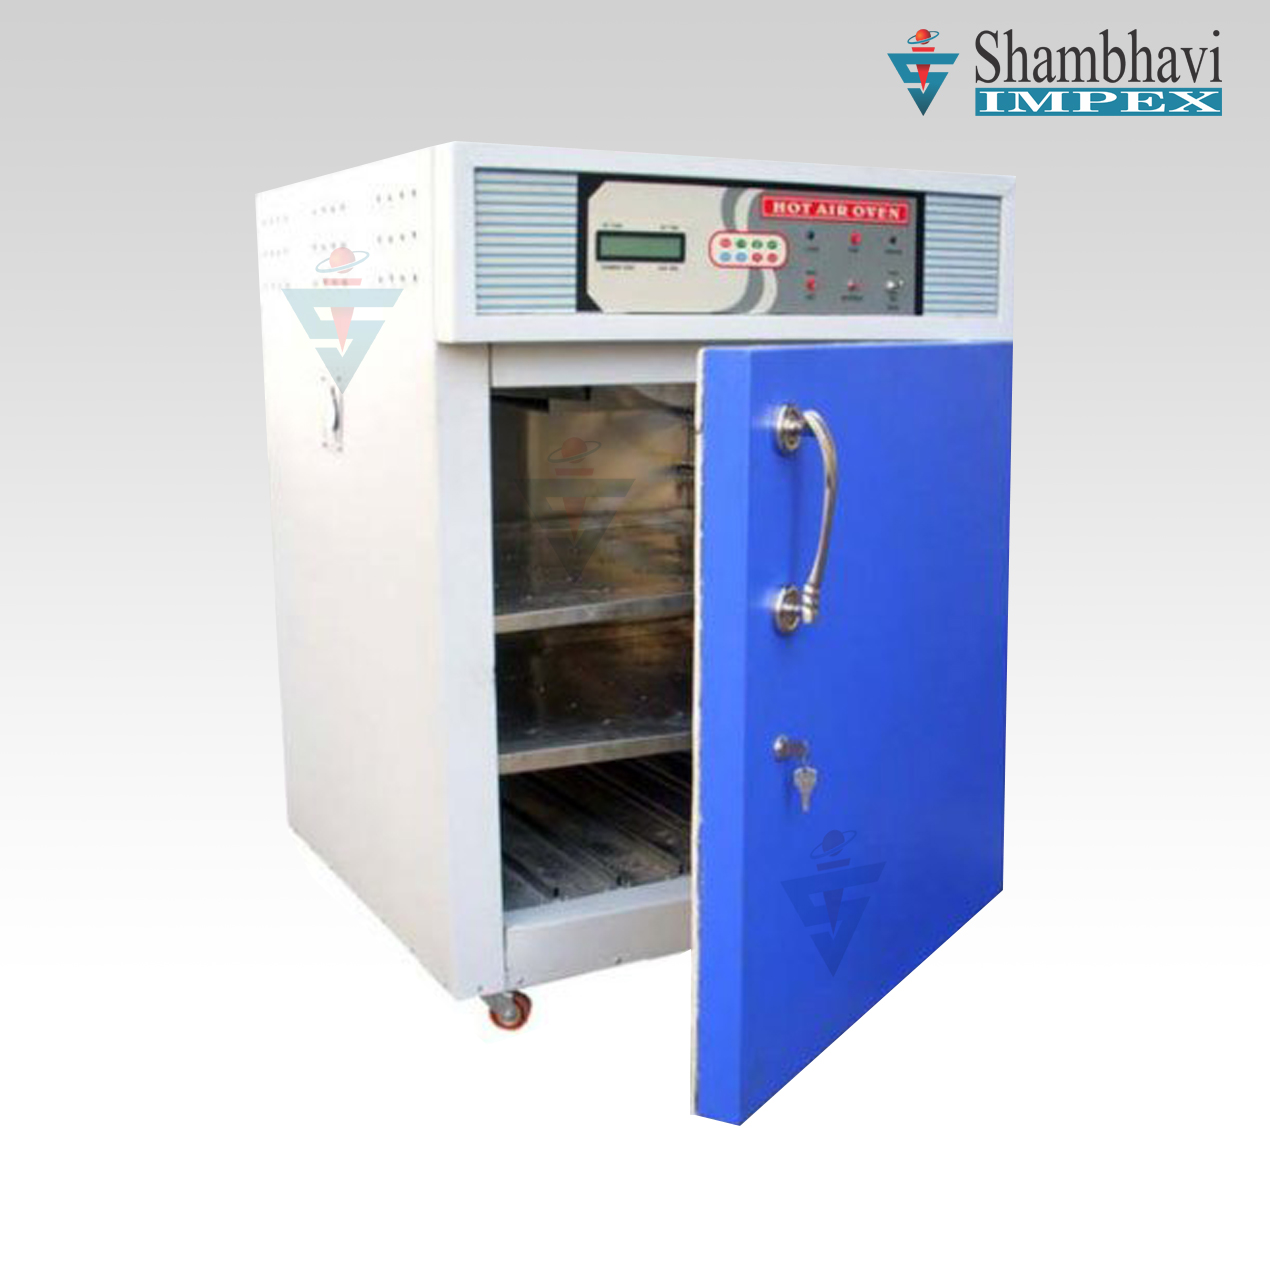 Hot Air Oven (400)